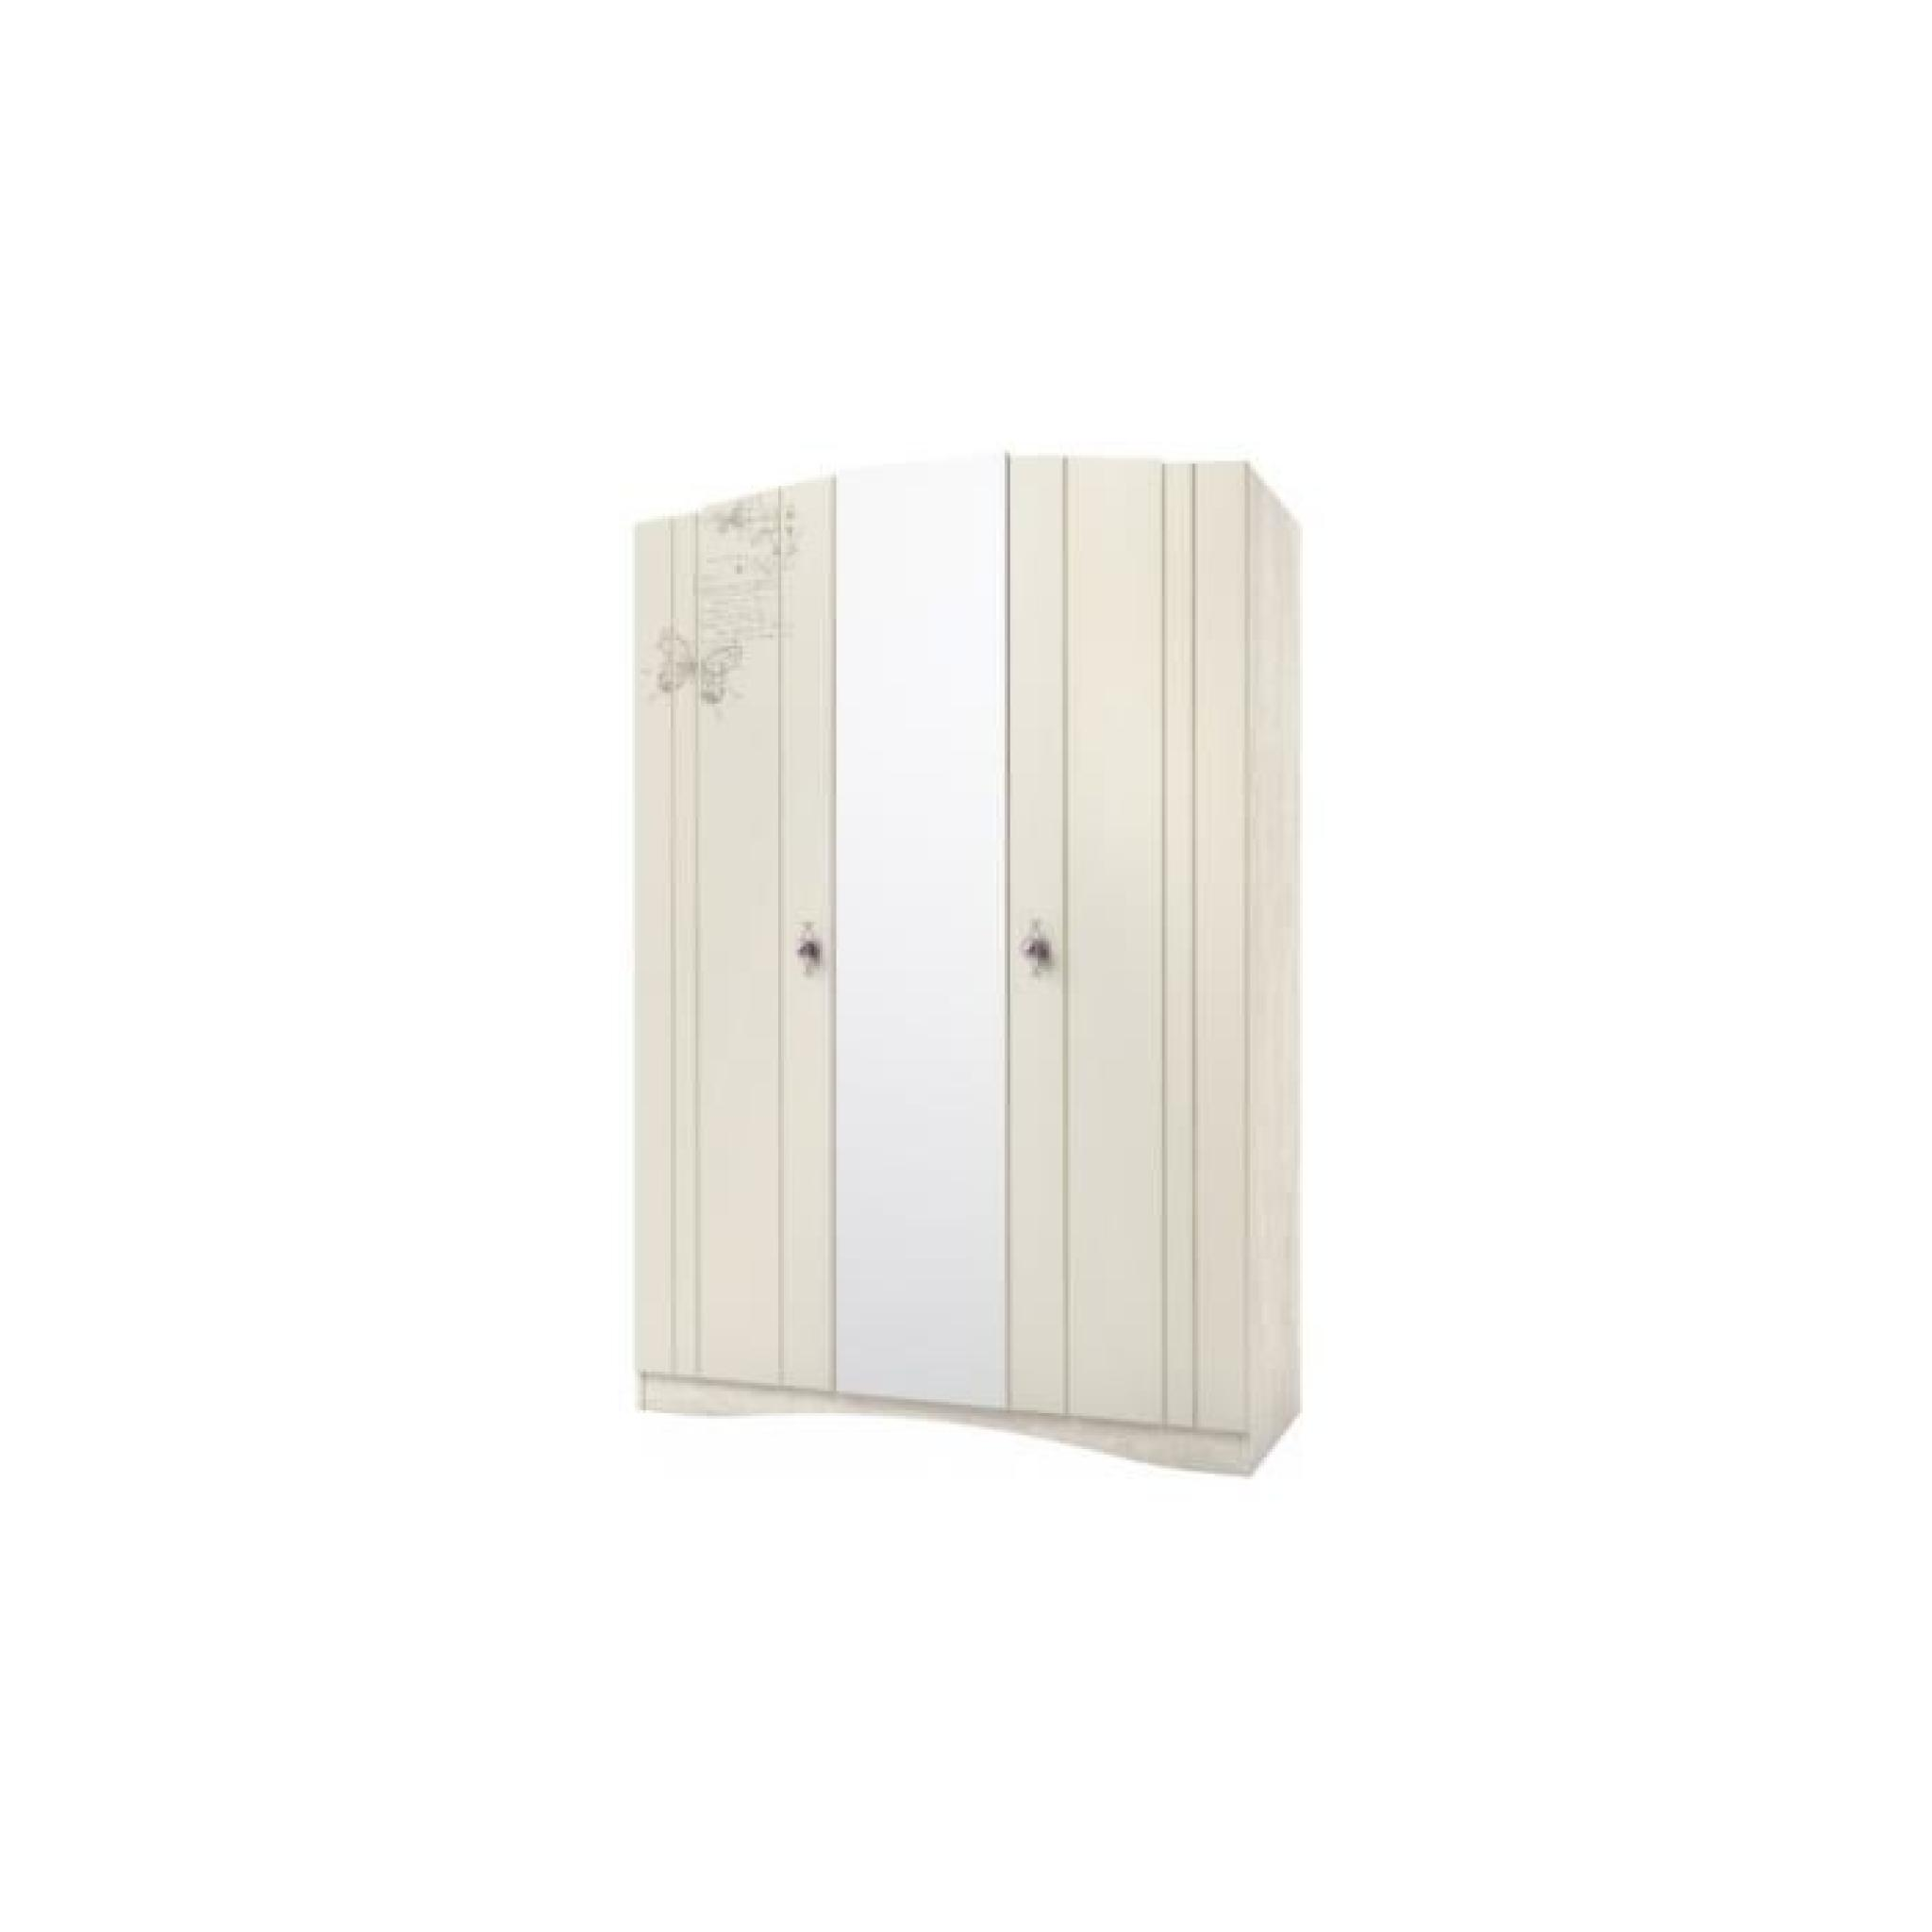 armoire enfant pas cher coiffeuse with armoire enfant pas cher armoire enfant pas cher with. Black Bedroom Furniture Sets. Home Design Ideas